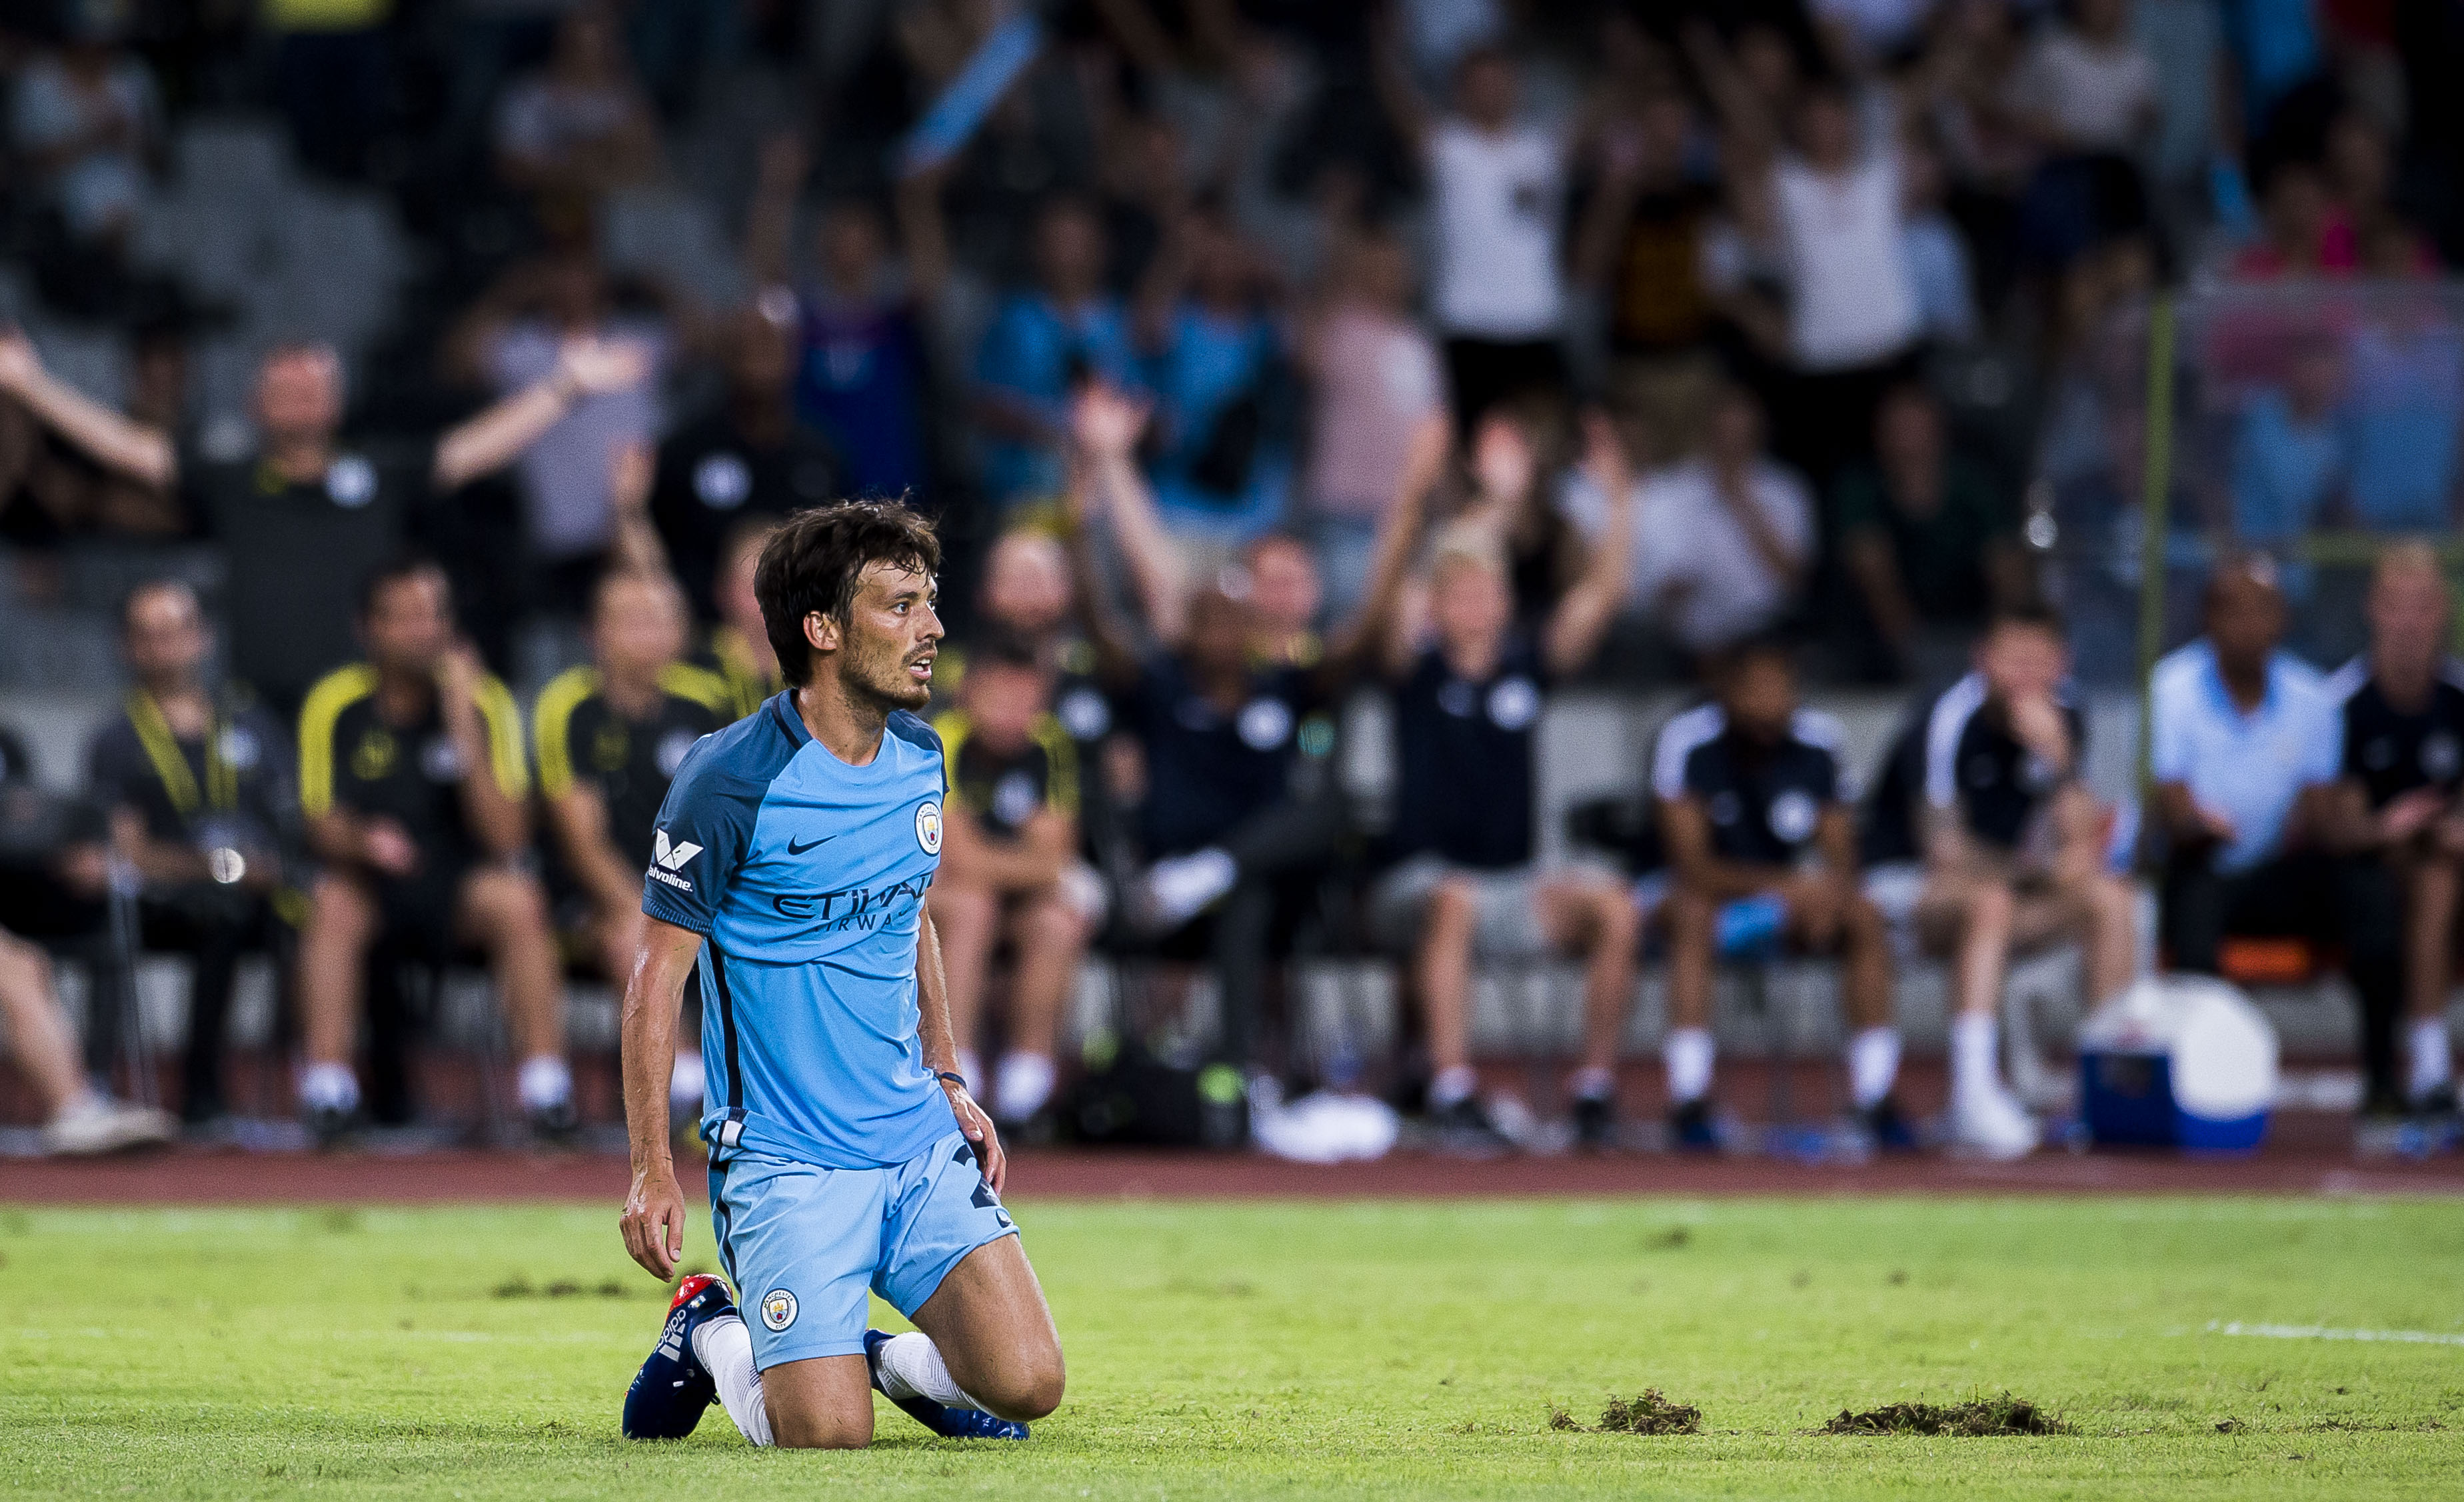 David Silva out of Manchester City's Champions League clash due to injury